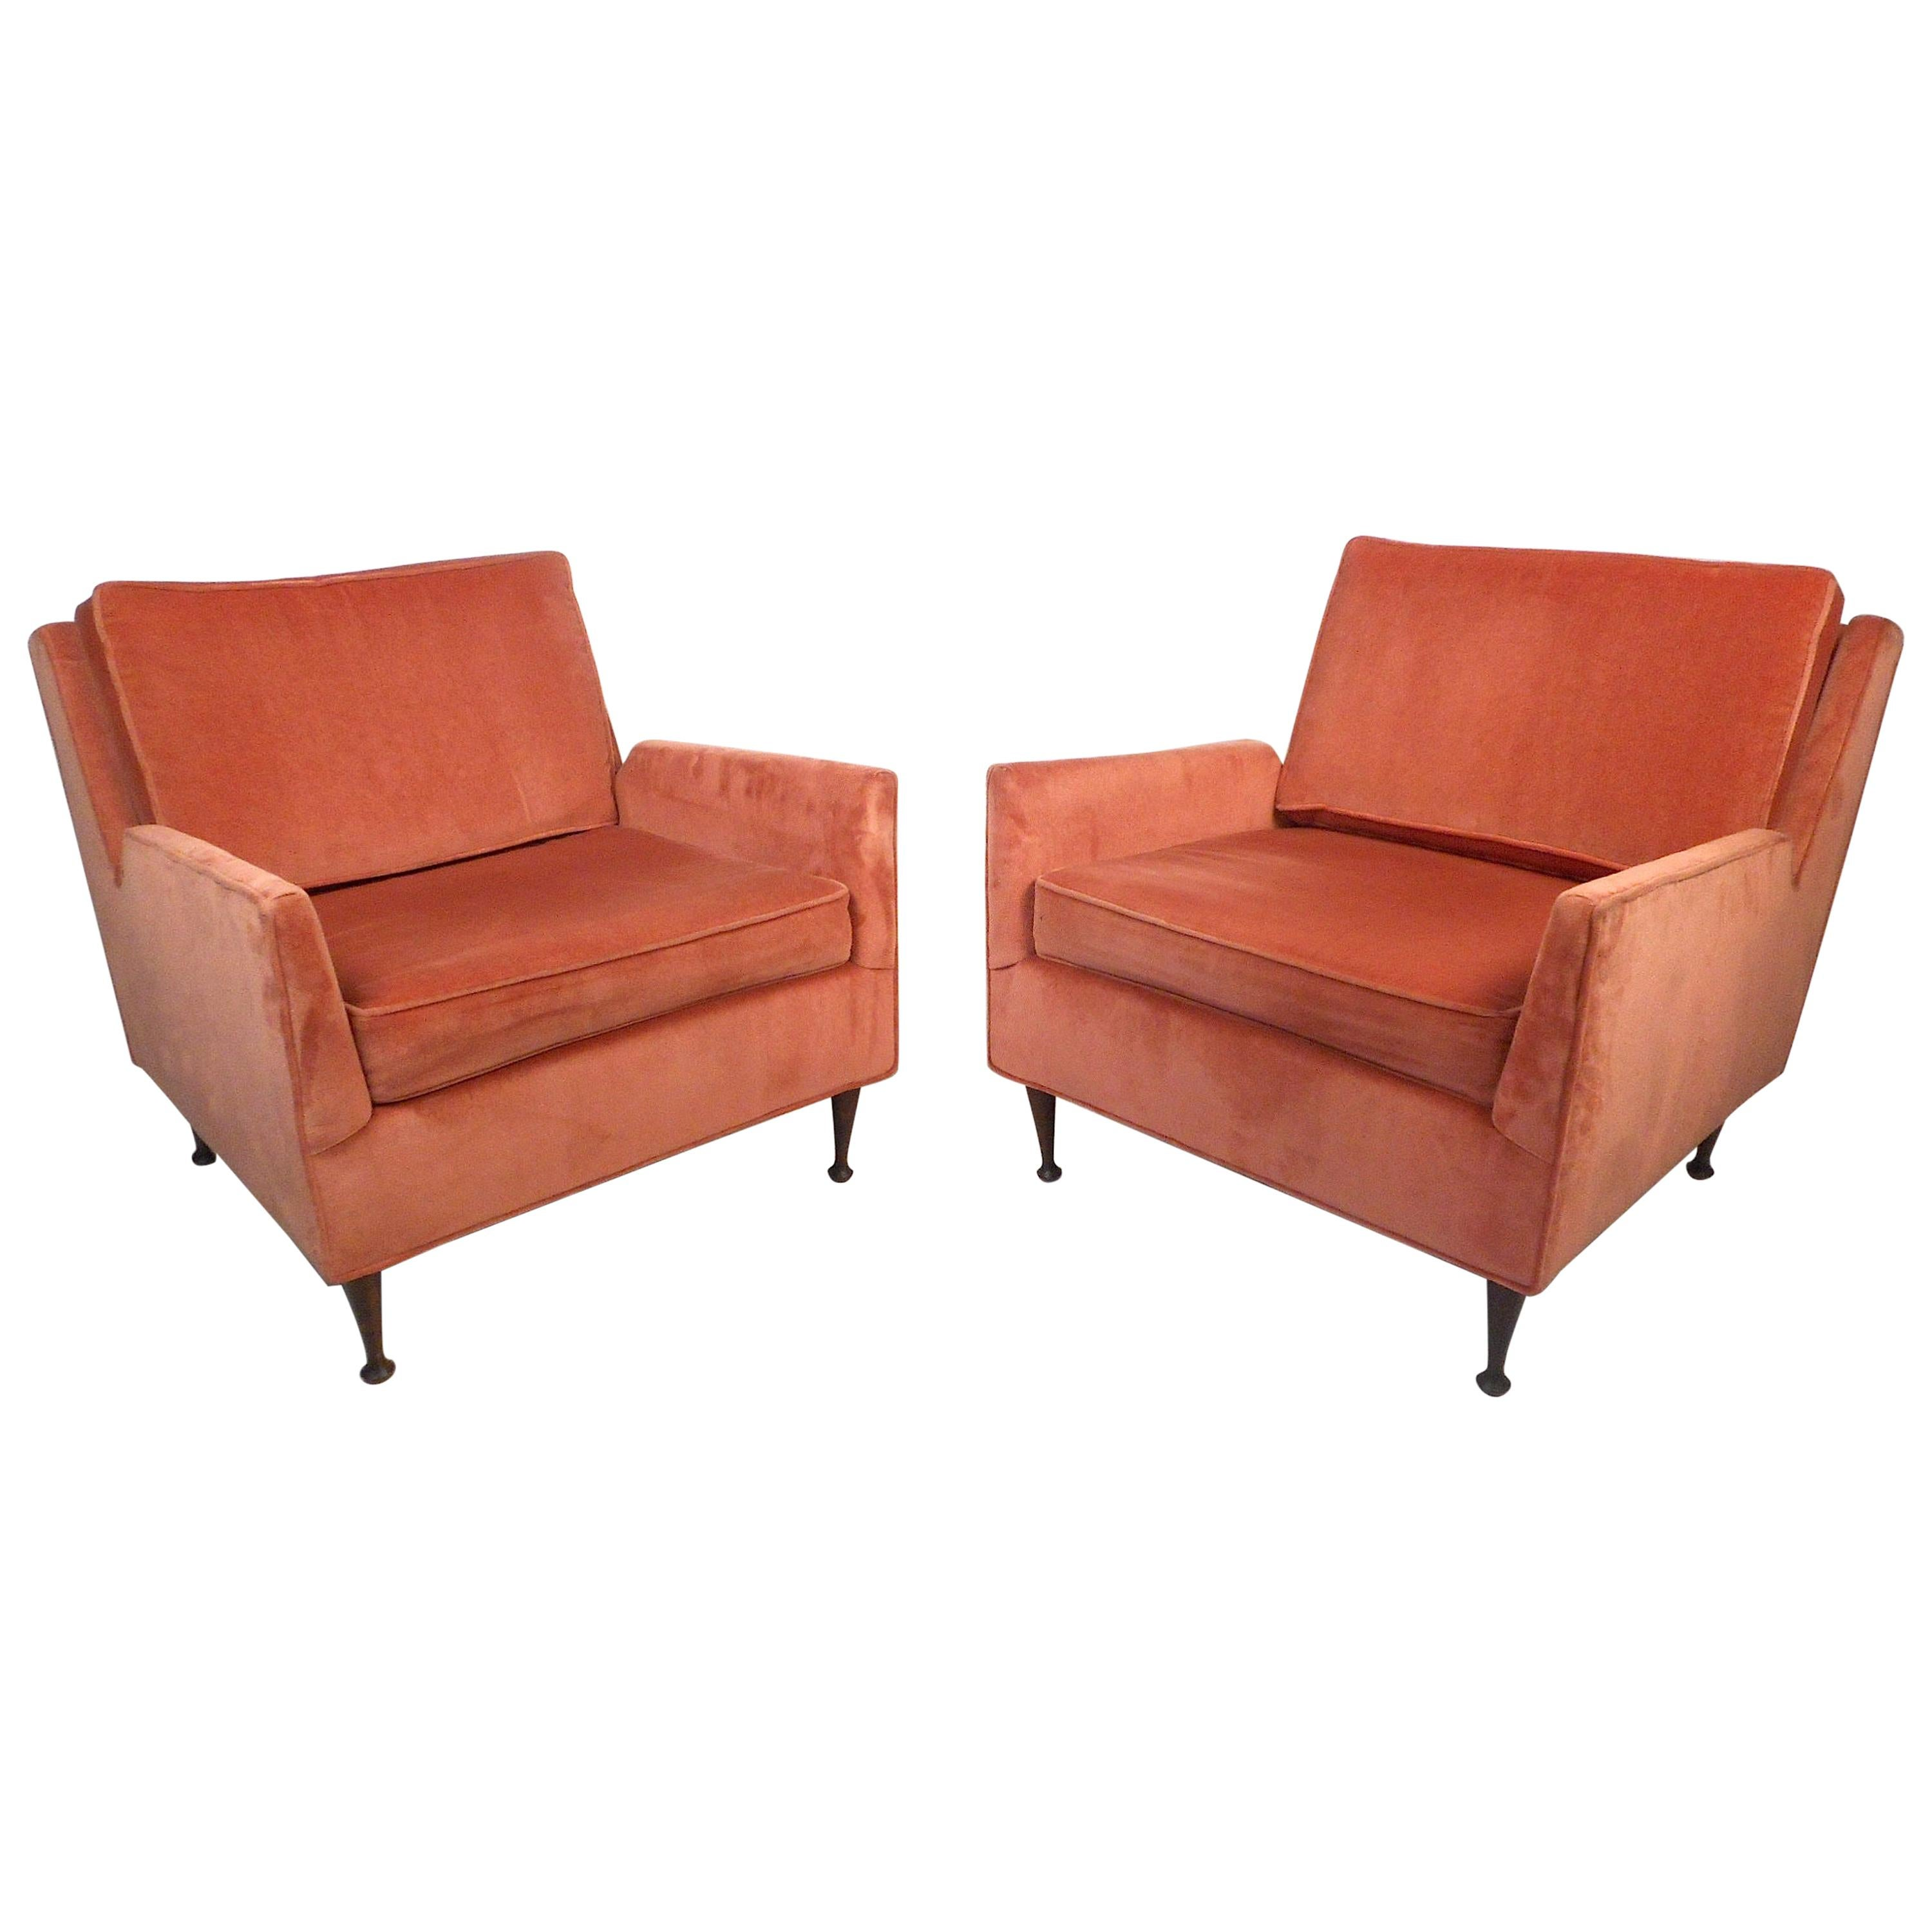 Pair of Midcentury Lounge Chairs after McCobb